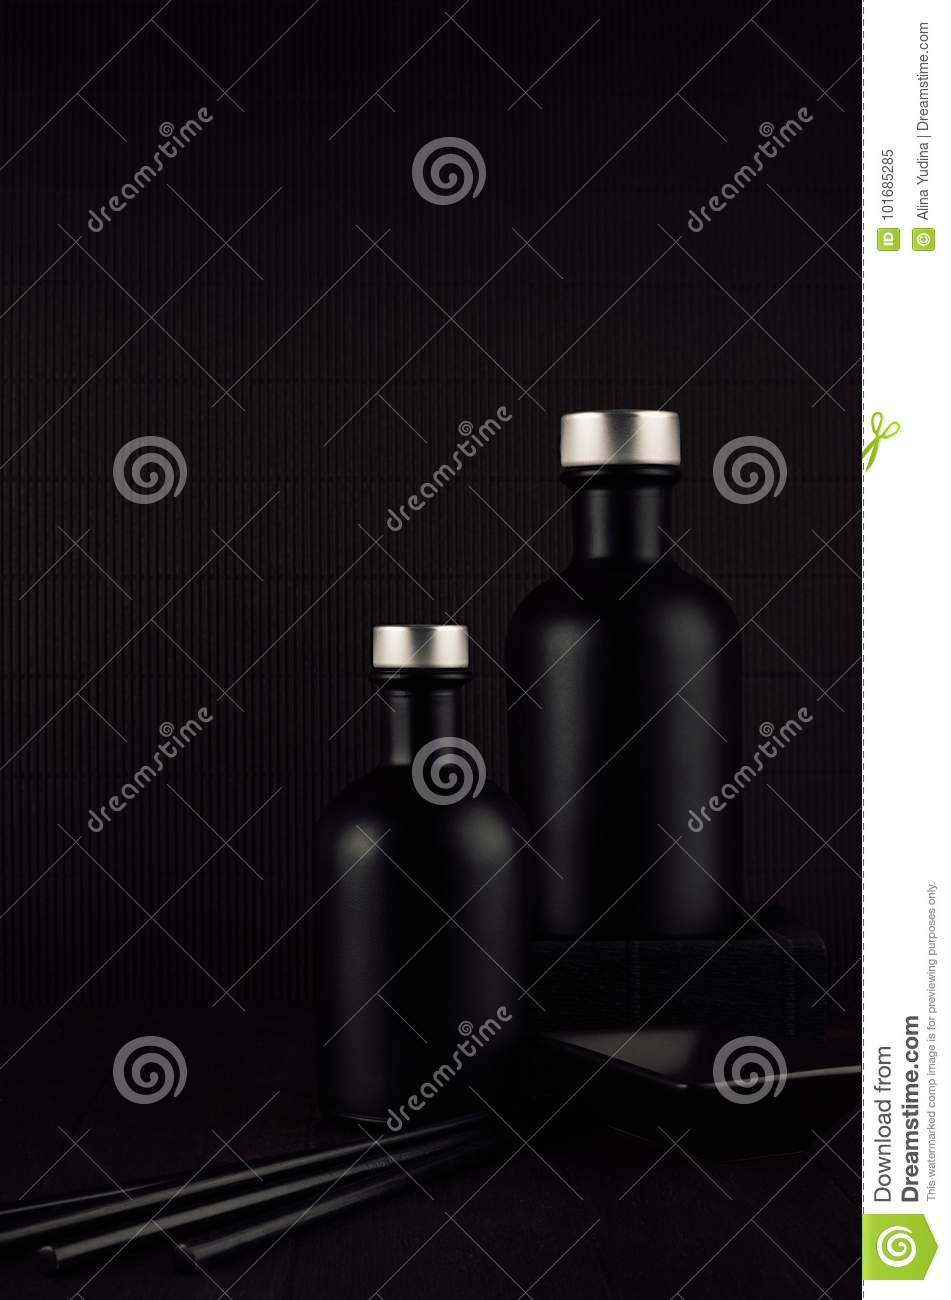 Noir Exquisite Home Decor With Blank Black Cosmetics Bottles Ceramics On Dark Wood Board